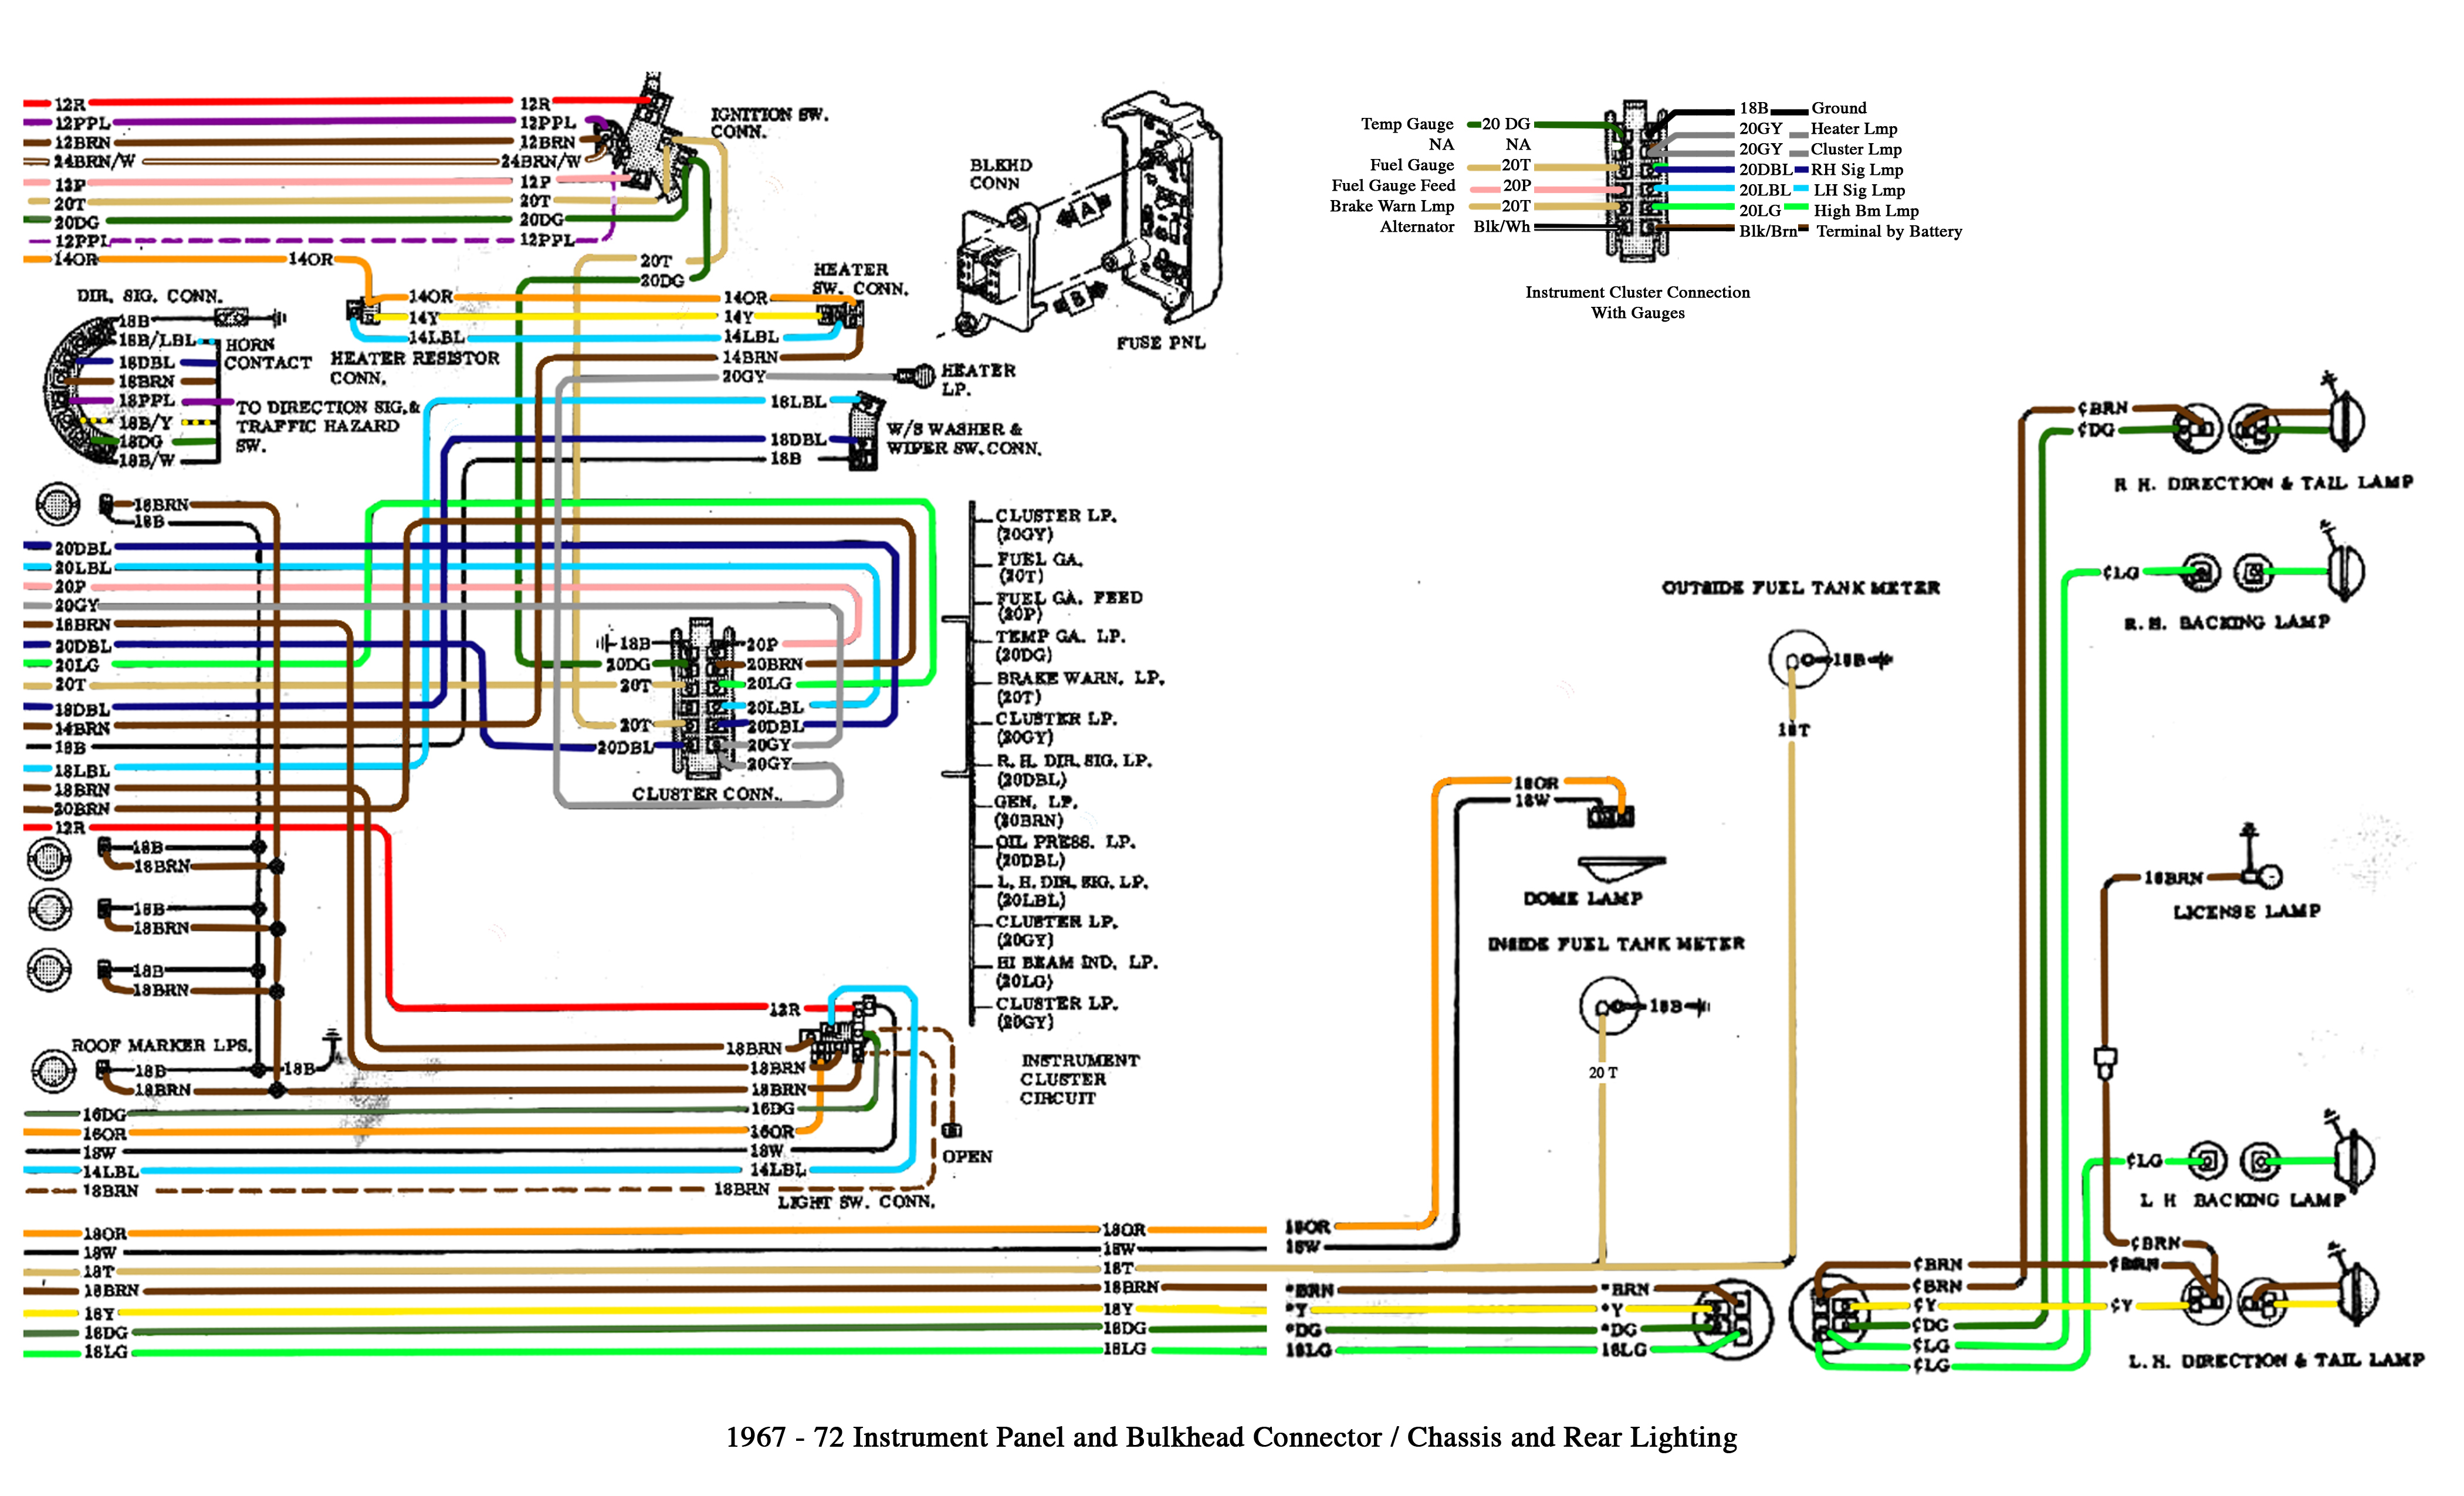 72 Chevy C10 Wiring Diagram - All Wiring Diagram Data - Chevy 350 Starter Wiring Diagram